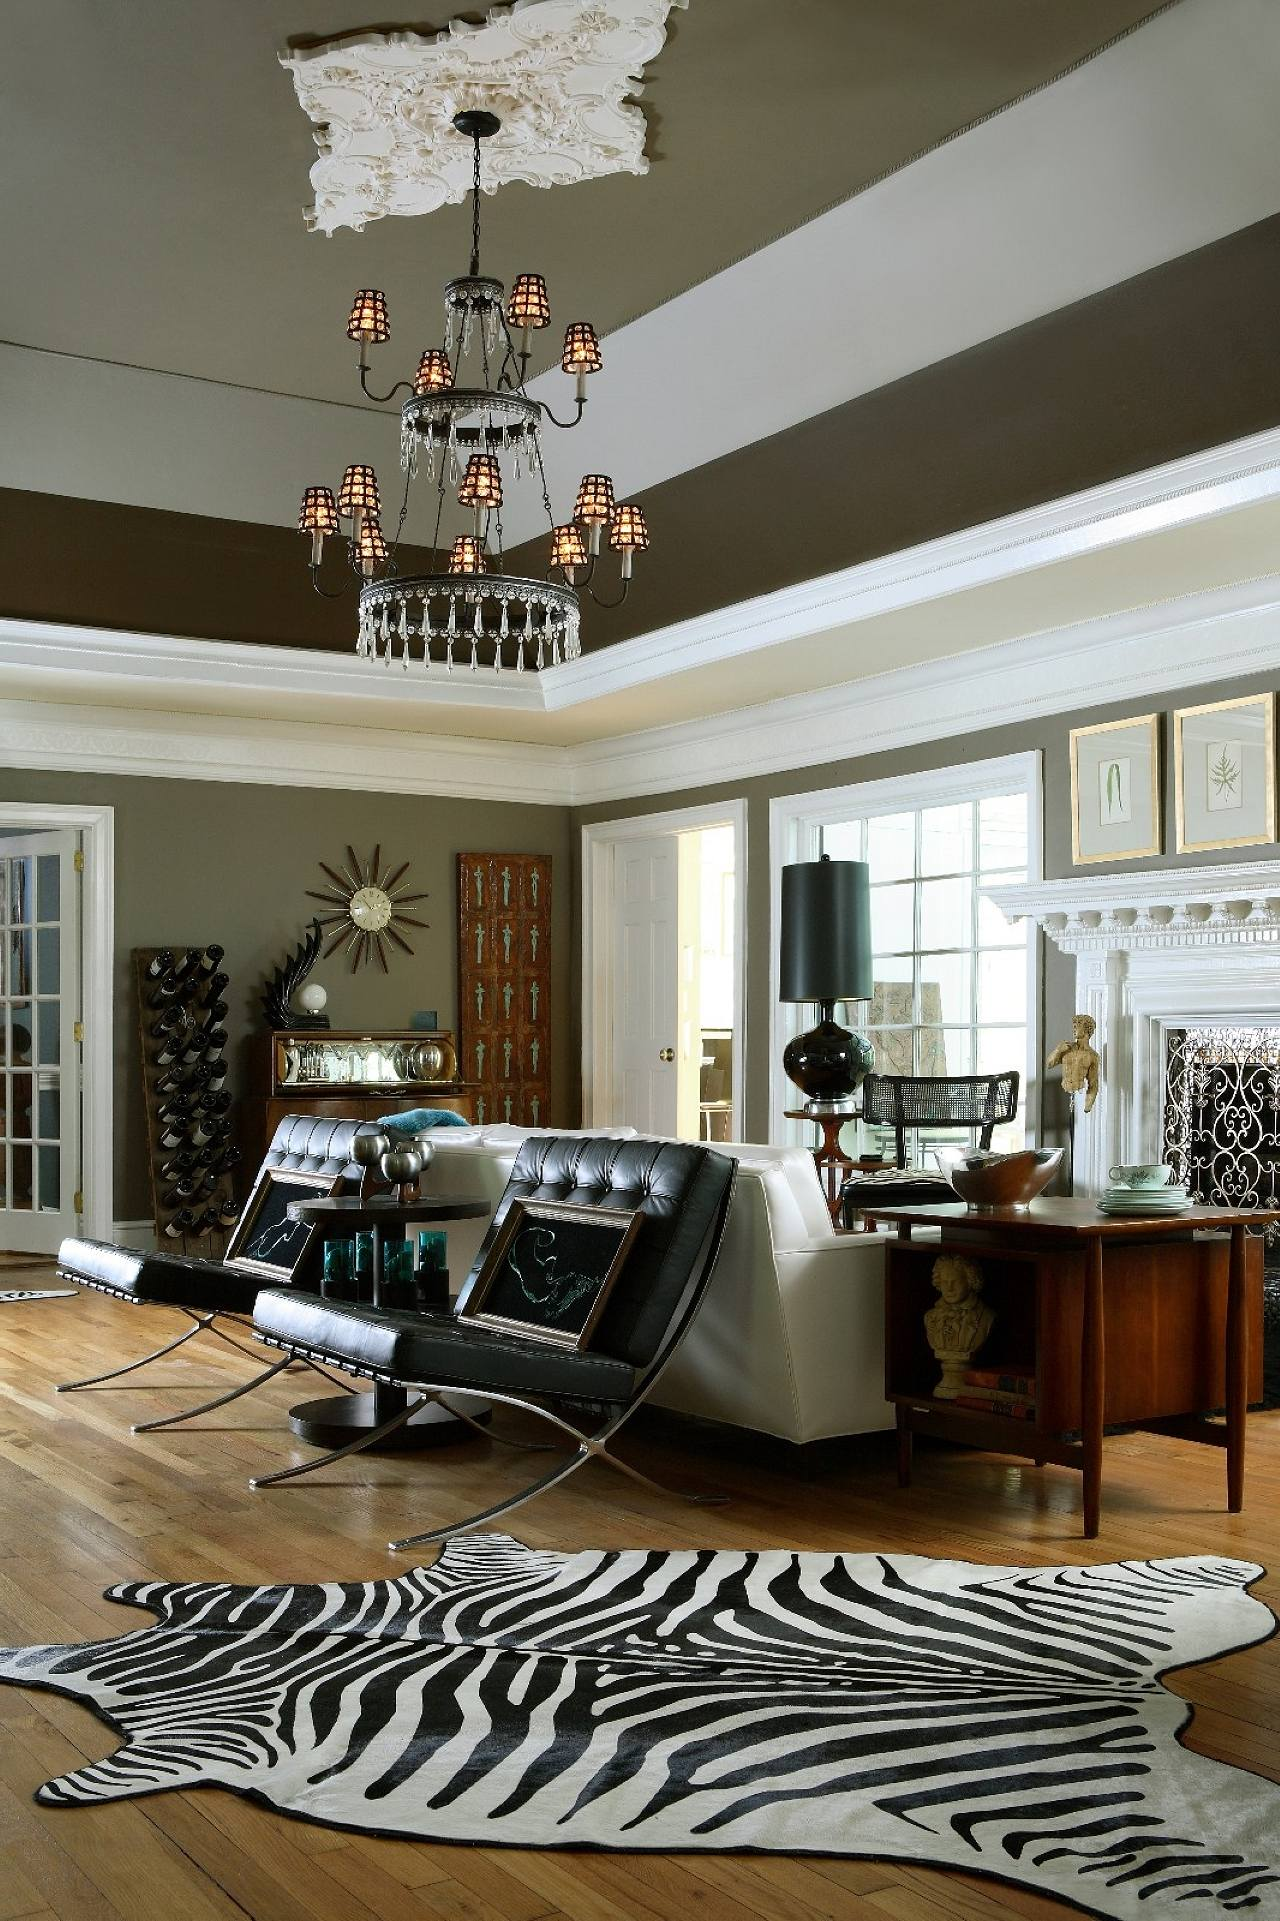 Eclectic-Style-Living-room-design.jpg